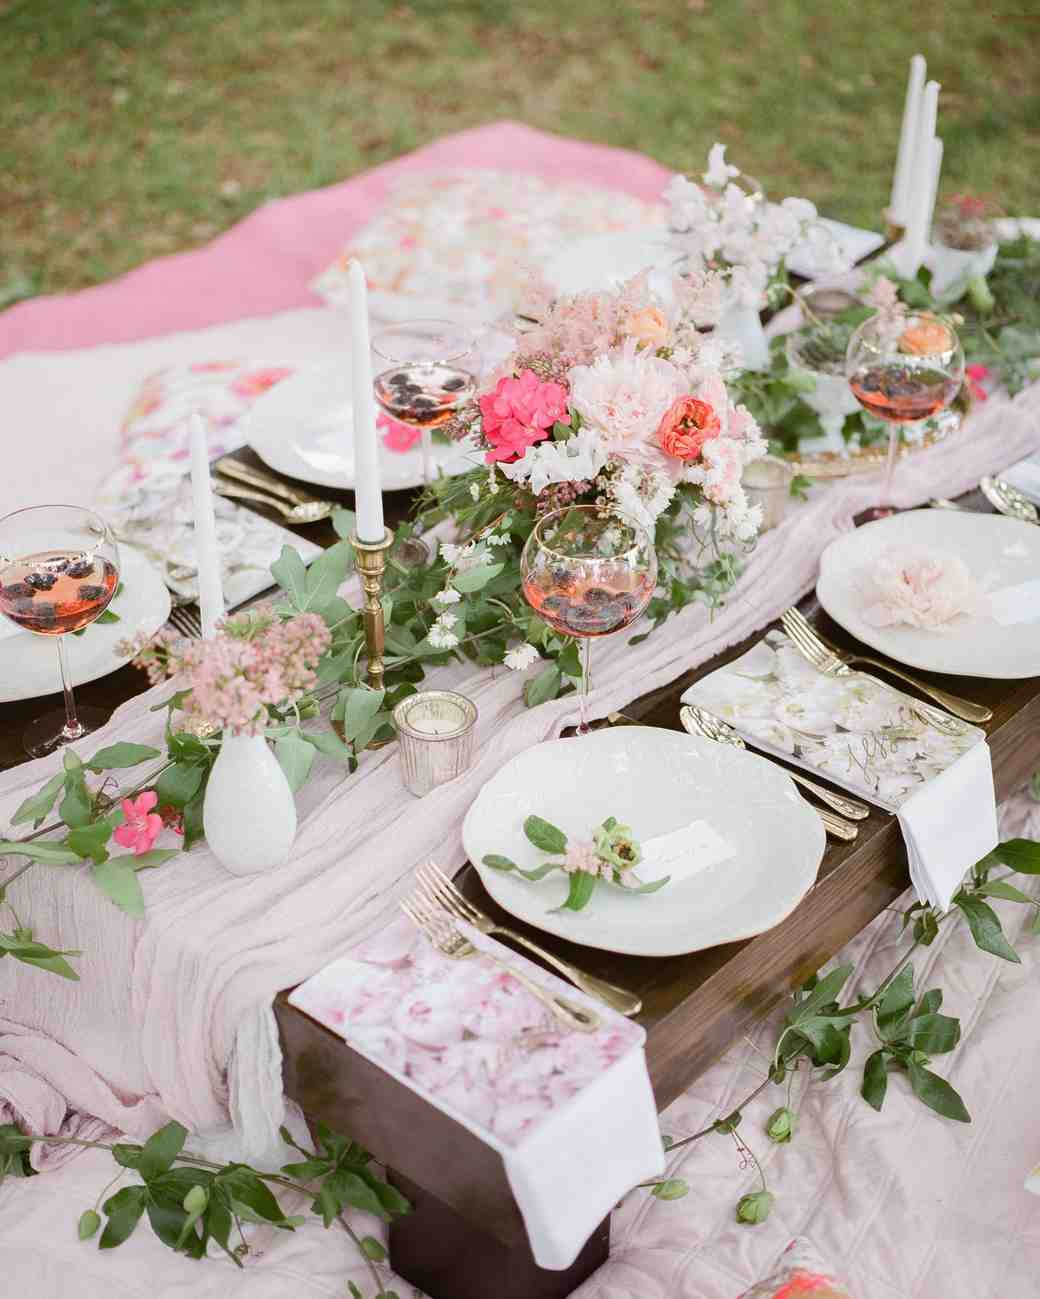 c1659b4a638 24 Unexpected Bridal Shower Ideas to Bookmark